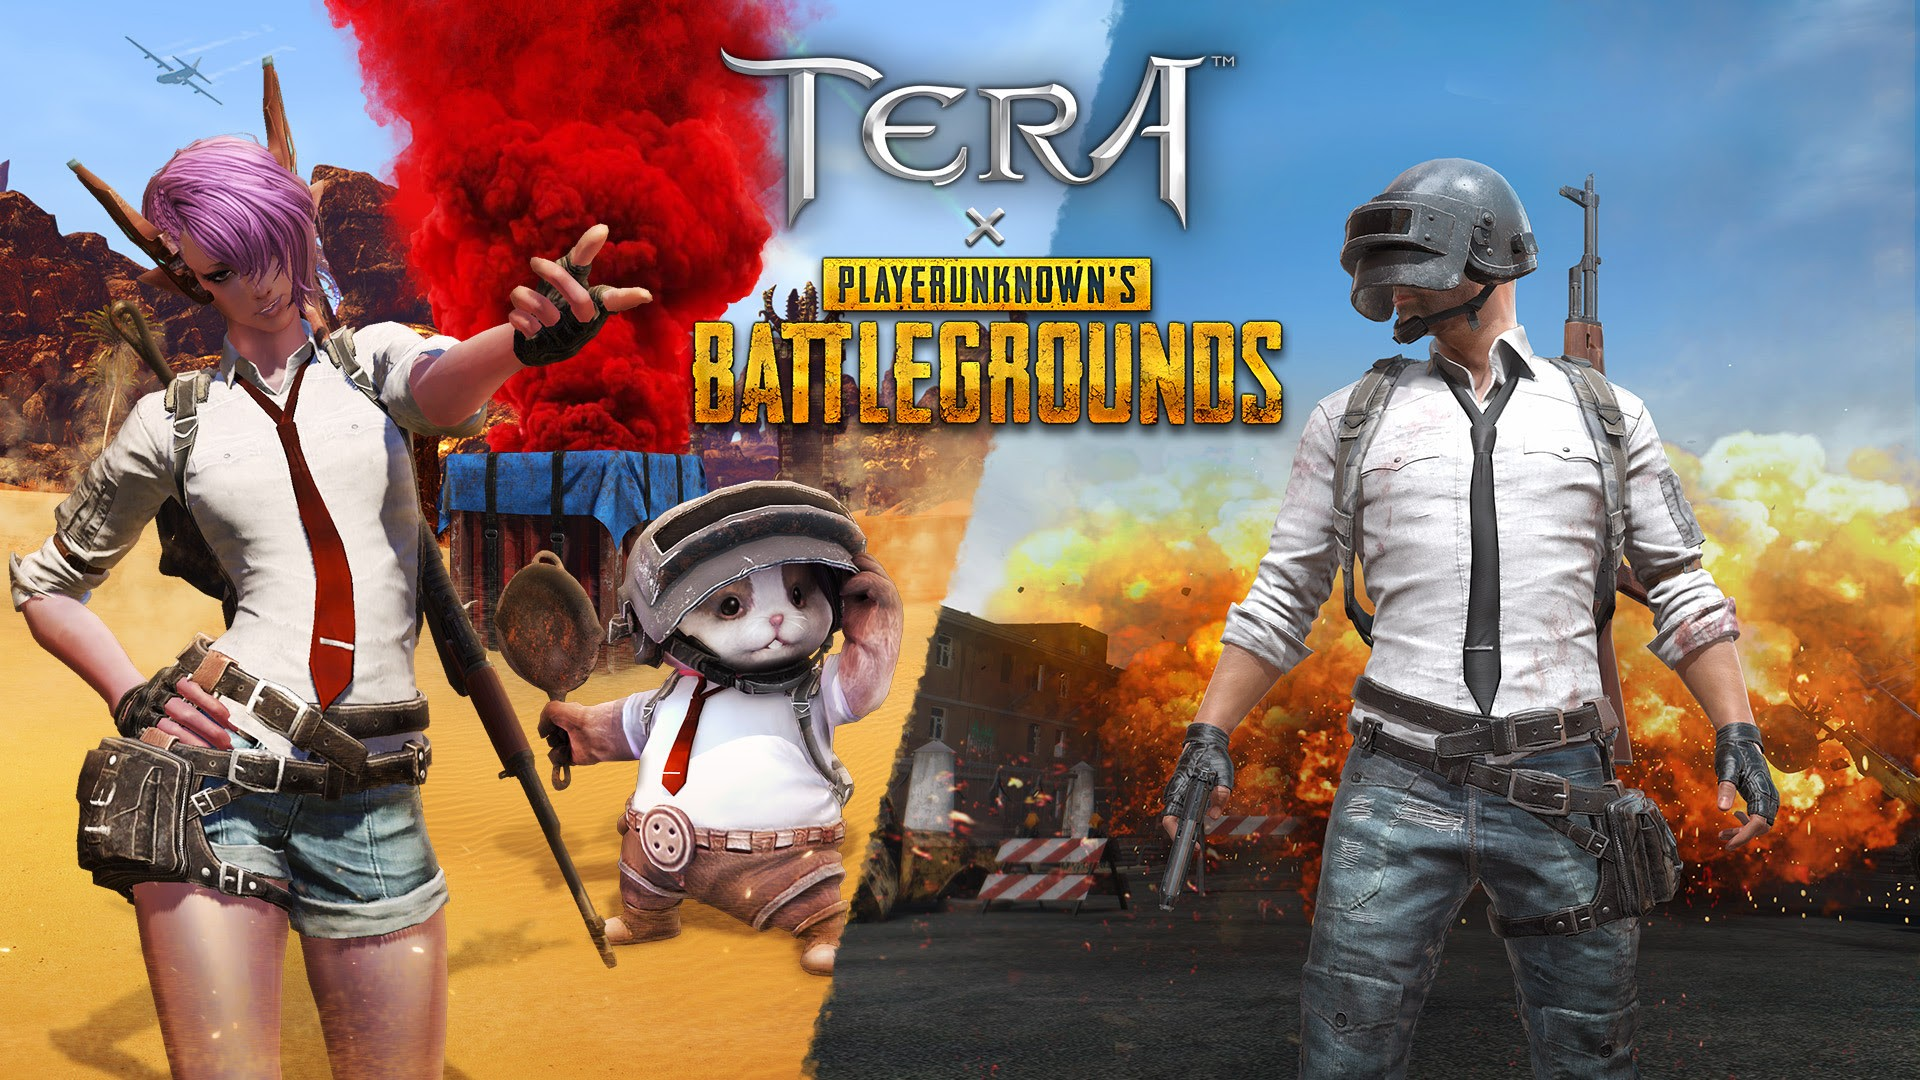 Playerunknown S Battlegrounds Drop Into Tera X Playerunknown S Battlegrounds Collaboration On March 5 Inven Global